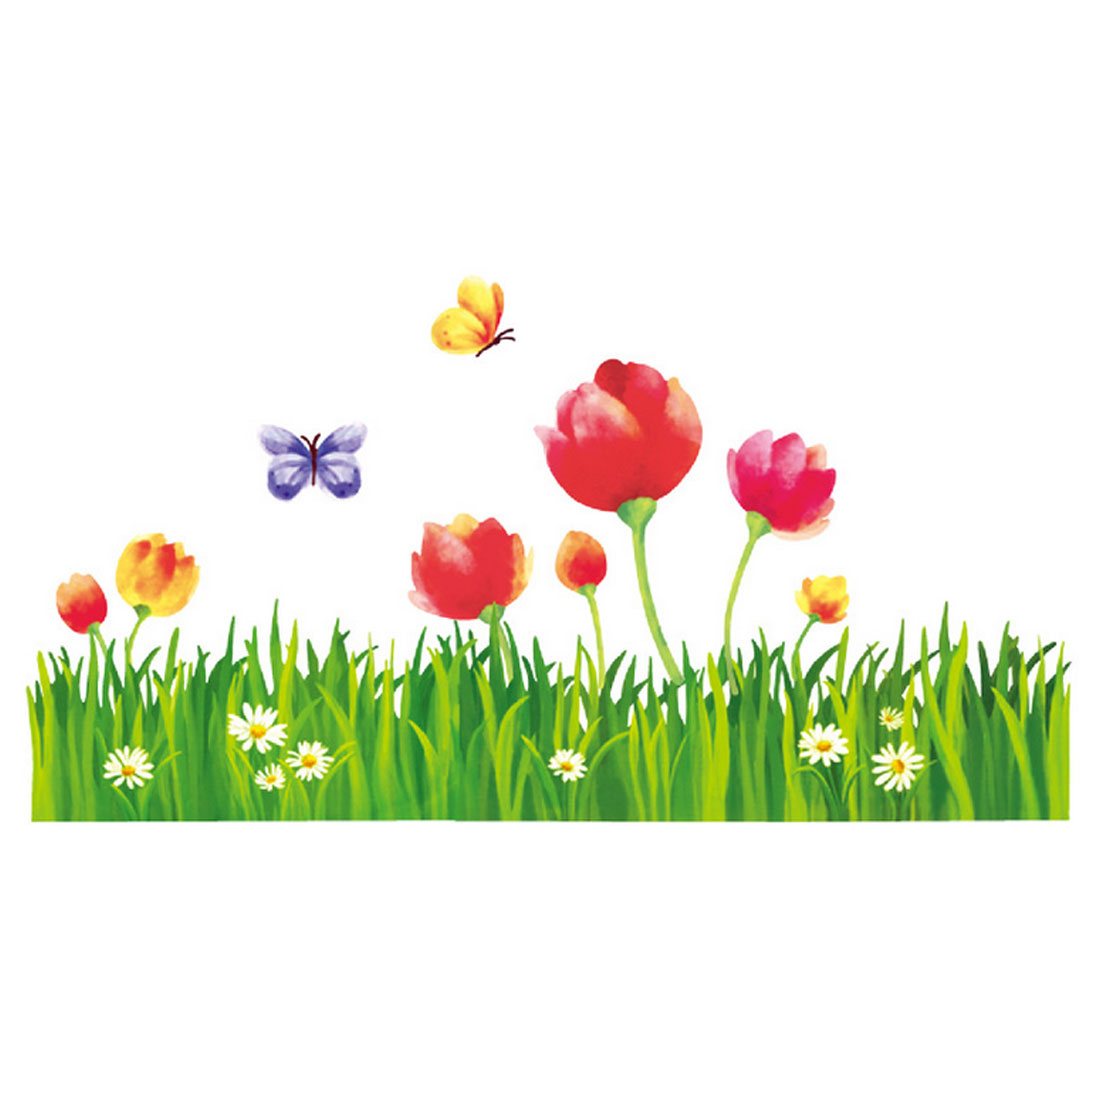 Home Grass Flower Pattern Adhesive Wall Sticker Decal 90x60cm